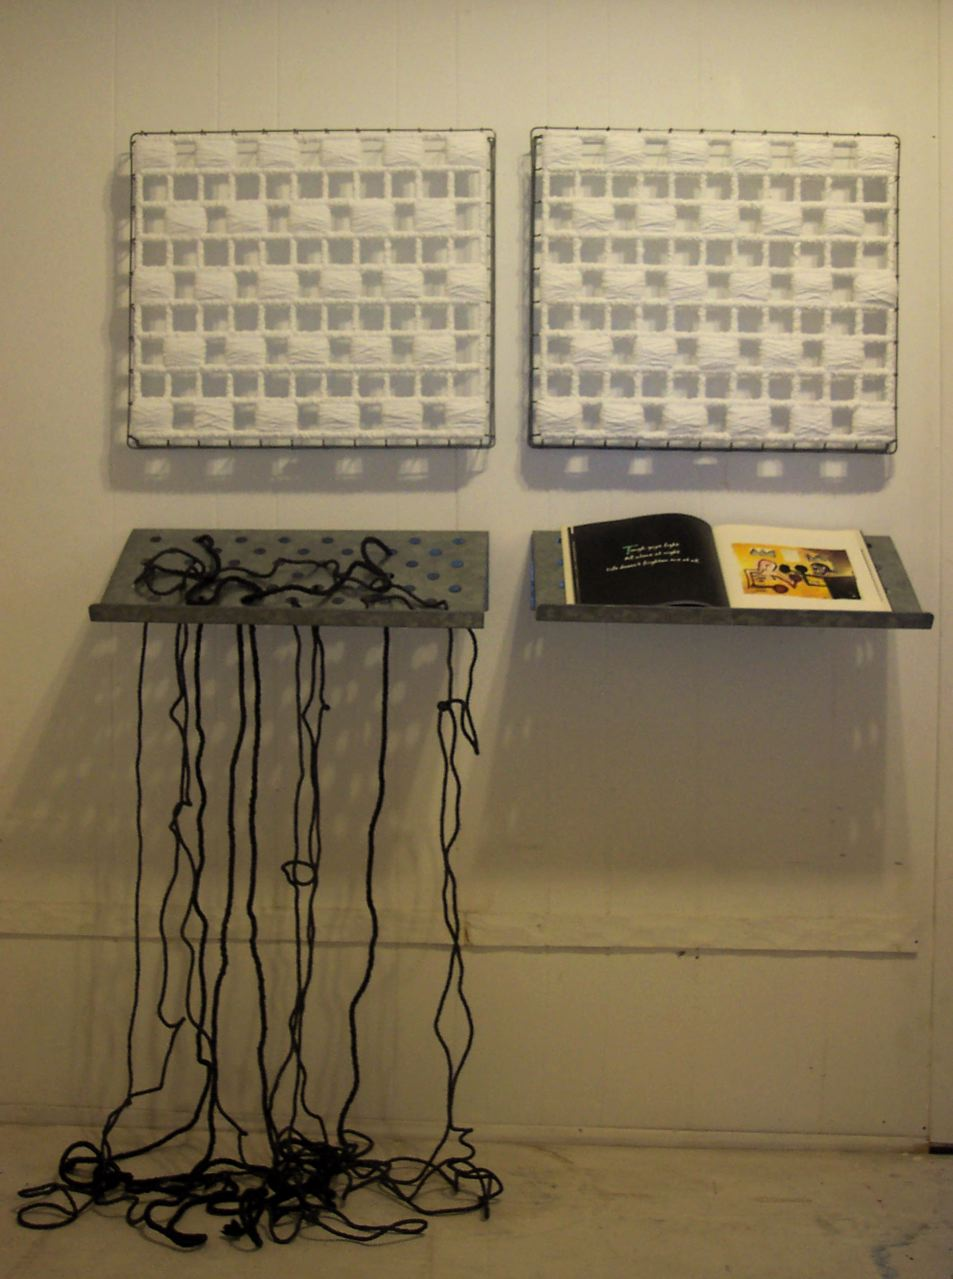 Untitled (Life) 2003, Yarn, book (Life Doesn't Frighten Me), aluminum rack, acrylic paint.